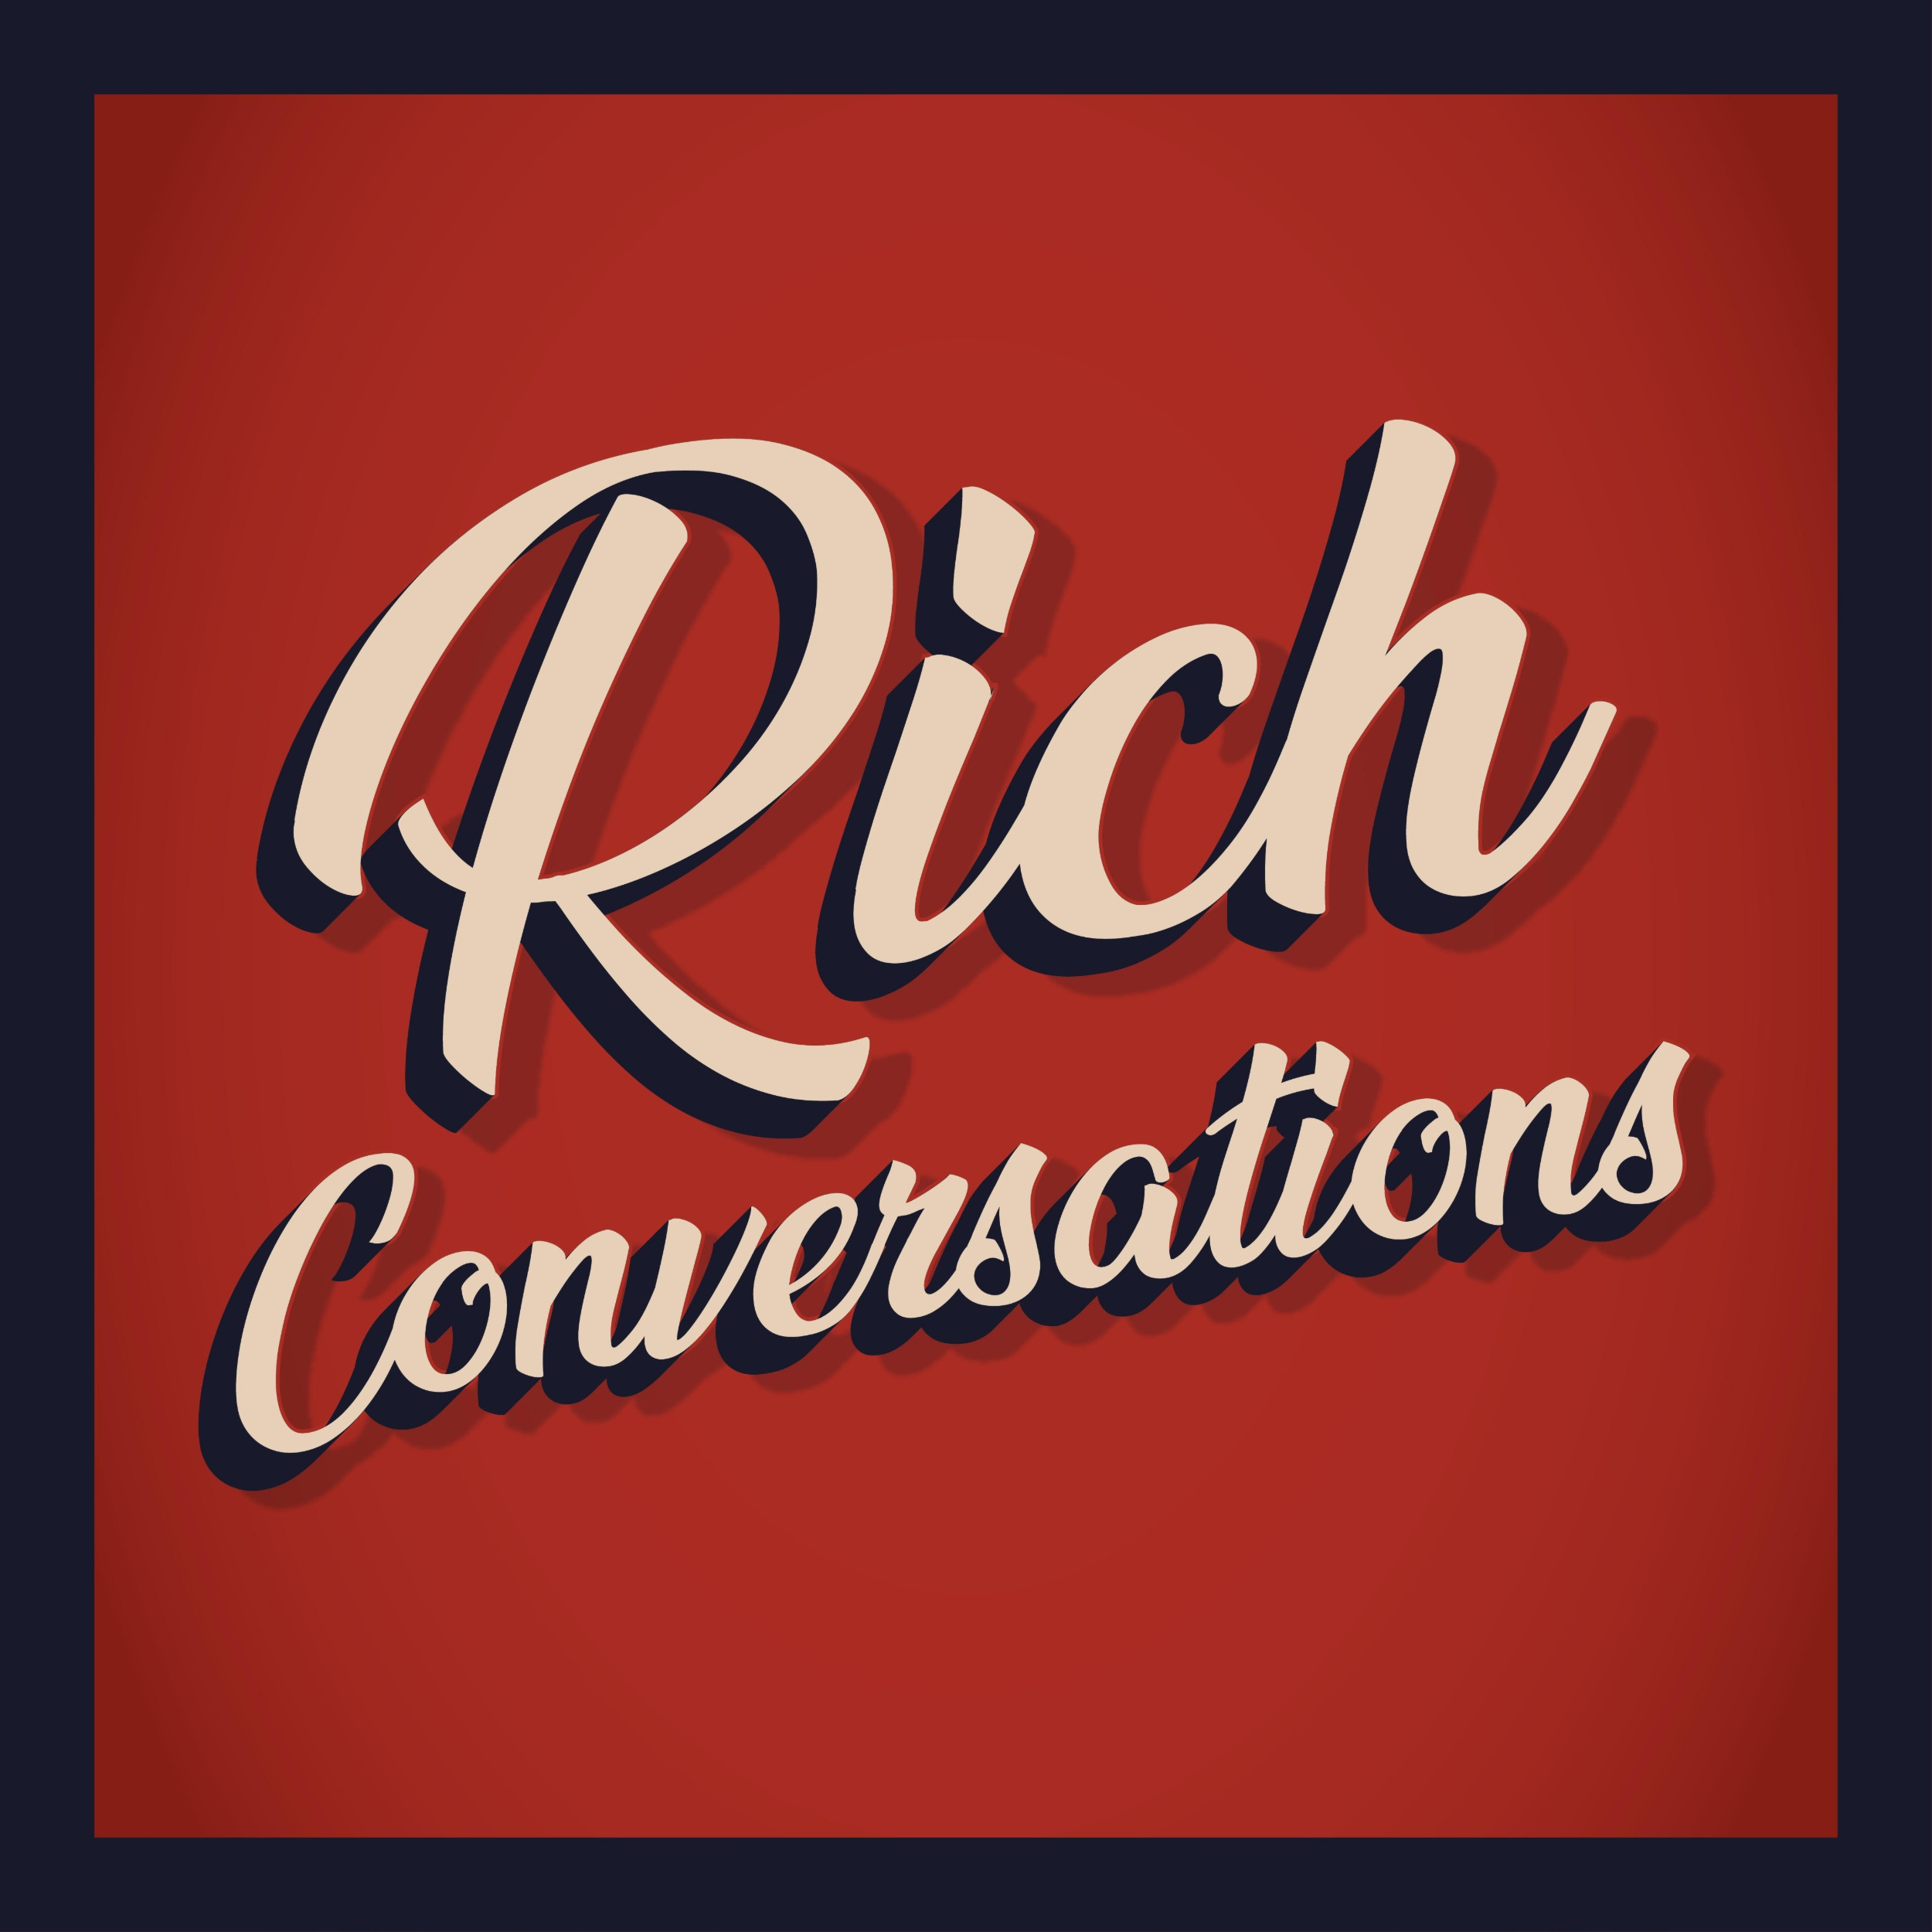 Rich Conversations: 025. Generations with Dr. Dave - rich hebron